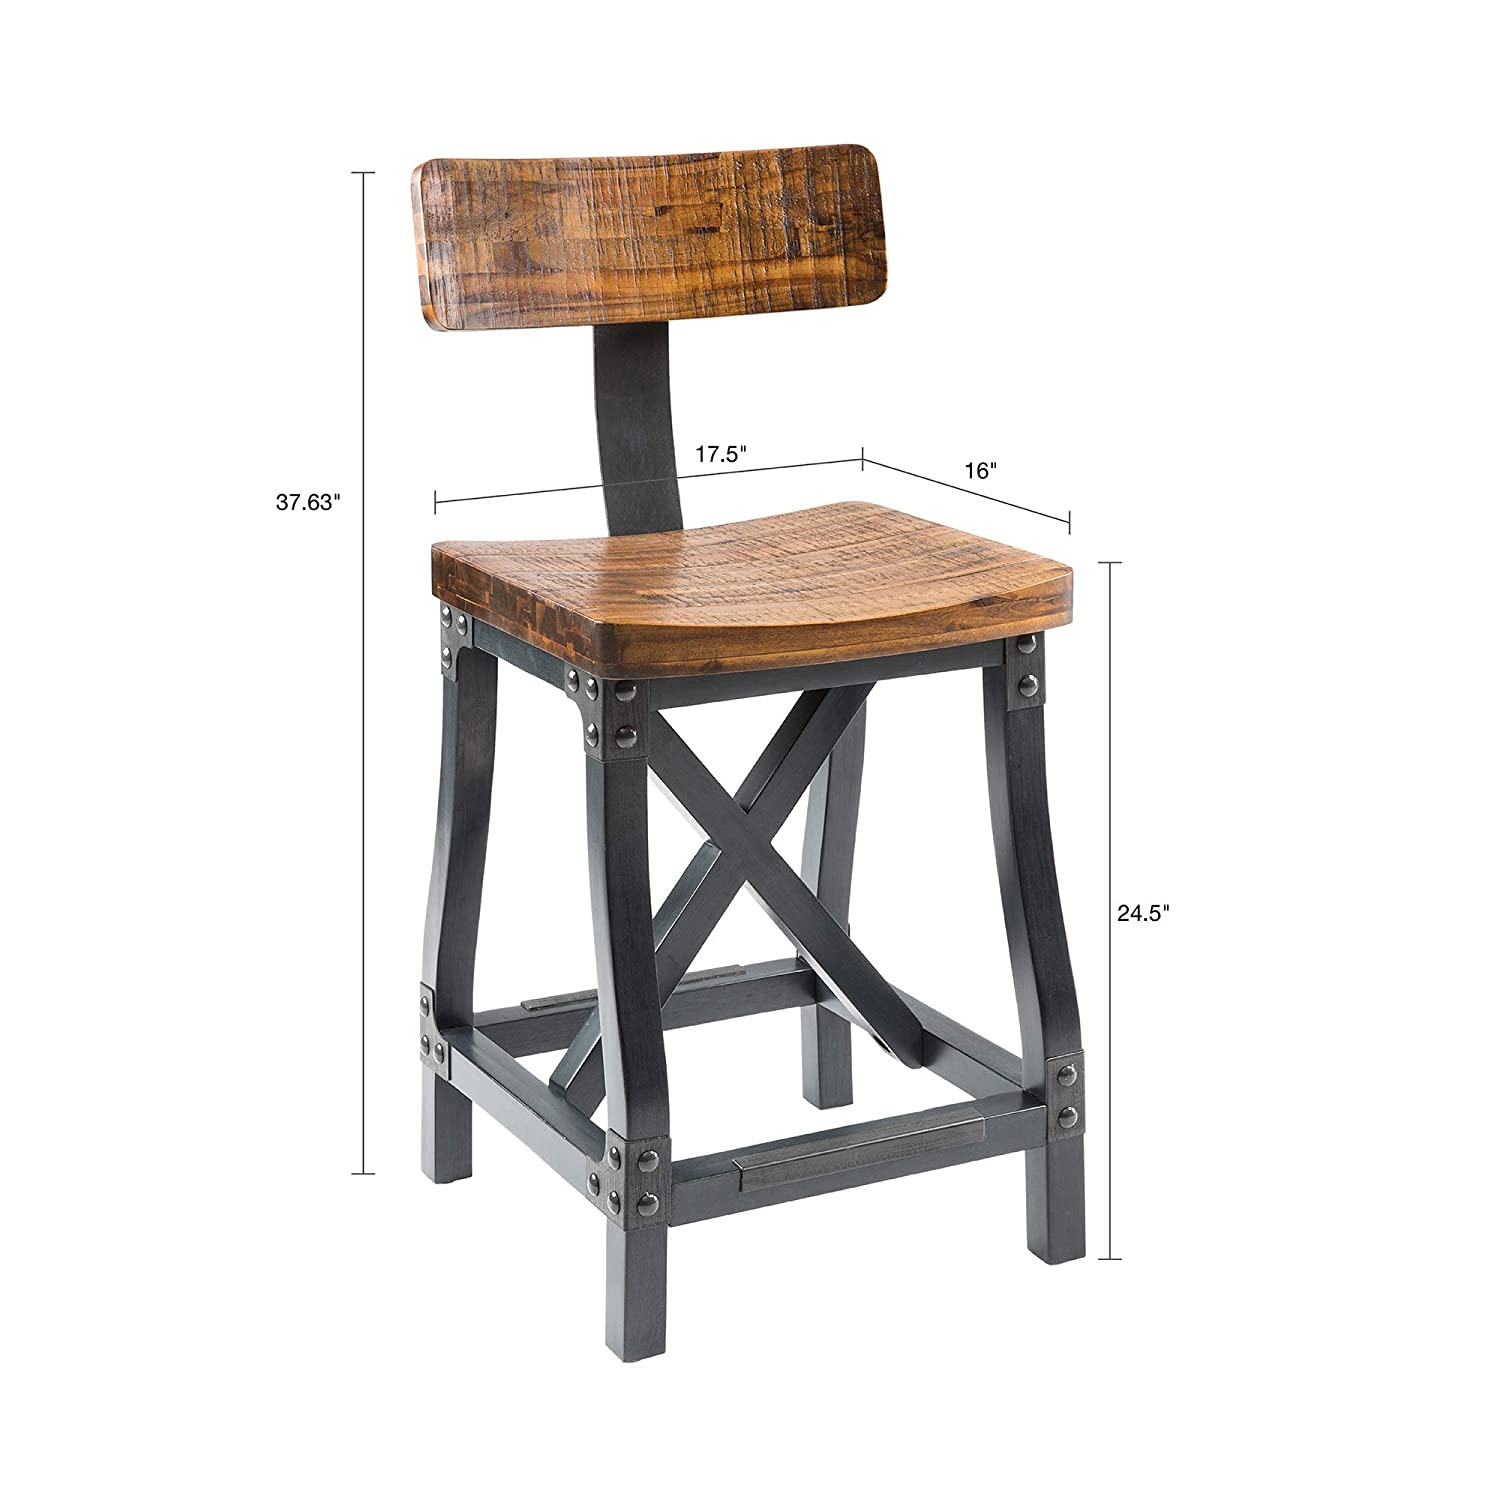 Groovy Ink Ivy Lancaster Counter Stools Contour Seat Removable Backrest Modern Industrial Counter Height Kitchen Chair Solid Wood Metal Kickplate Beatyapartments Chair Design Images Beatyapartmentscom